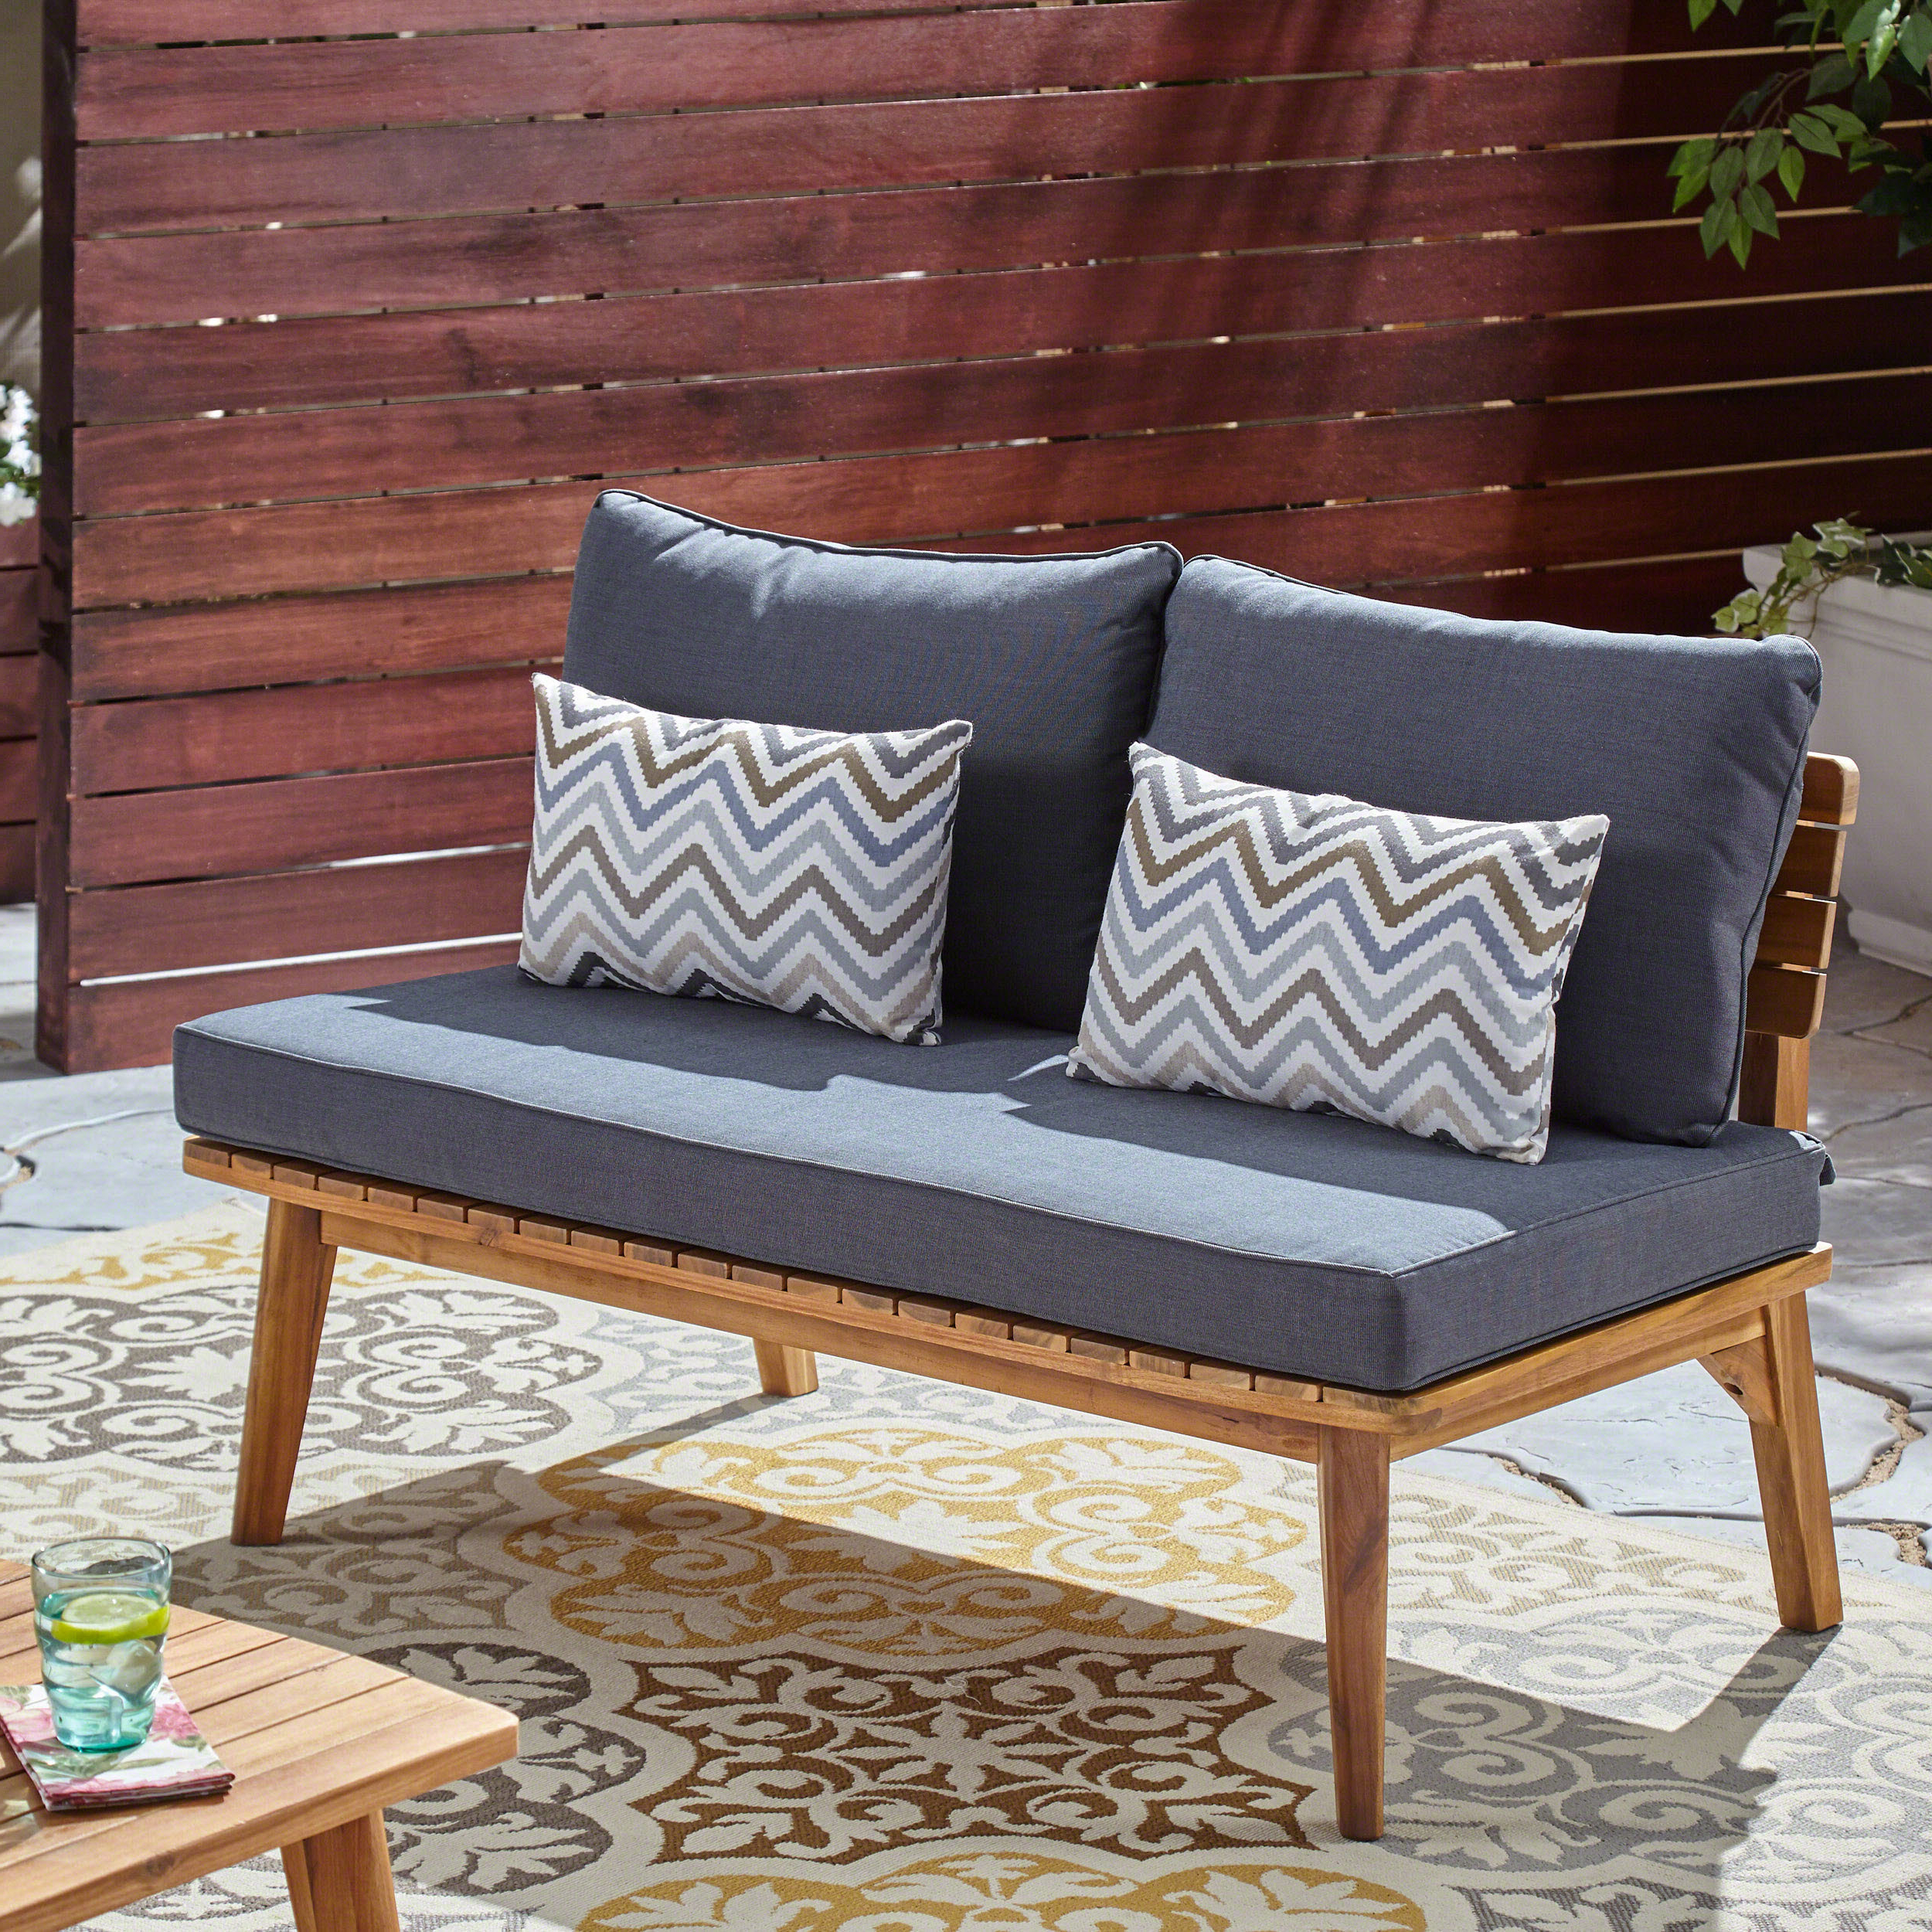 Englewood Loveseats With Cushions Inside 2019 Eller Loveseat With Cushions (View 10 of 20)